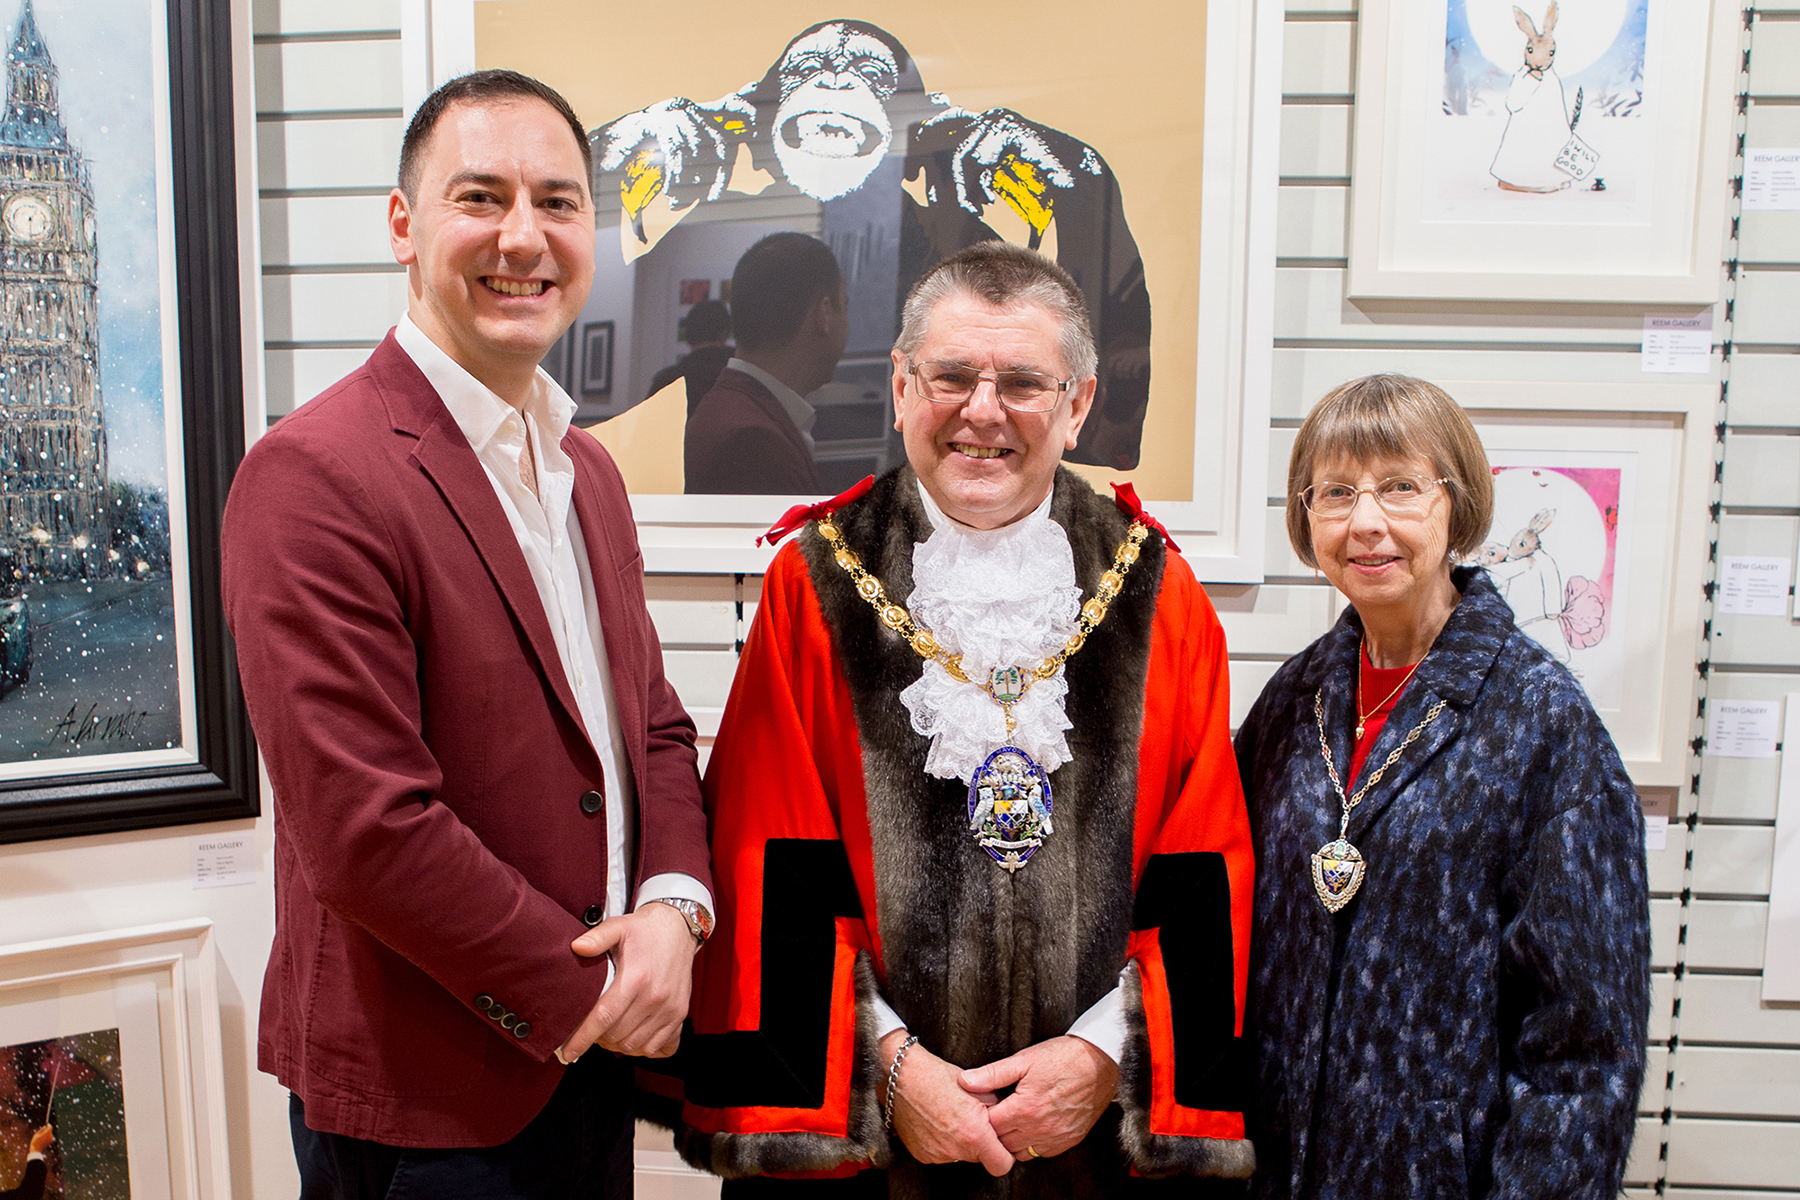 The Mayor & Mayoress at the Reem Gallery stand with Zaid Alexander Badda (Gallery Director).